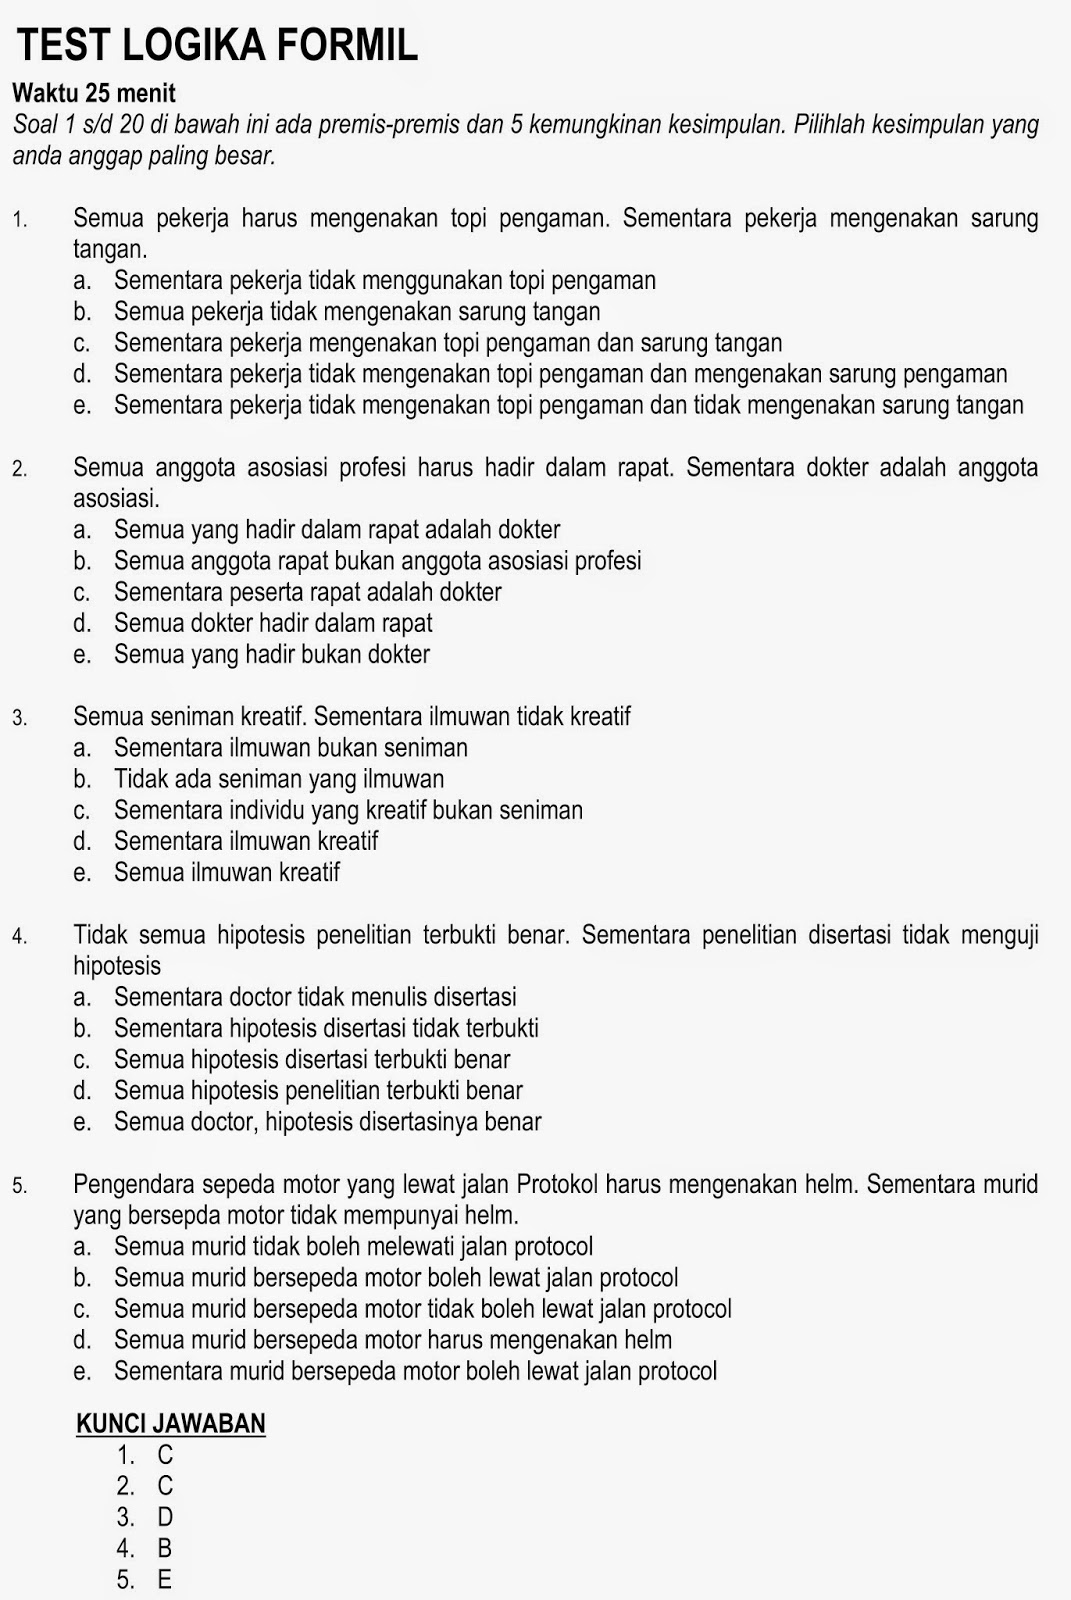 Contoh Soal Psikotest Logika Formil